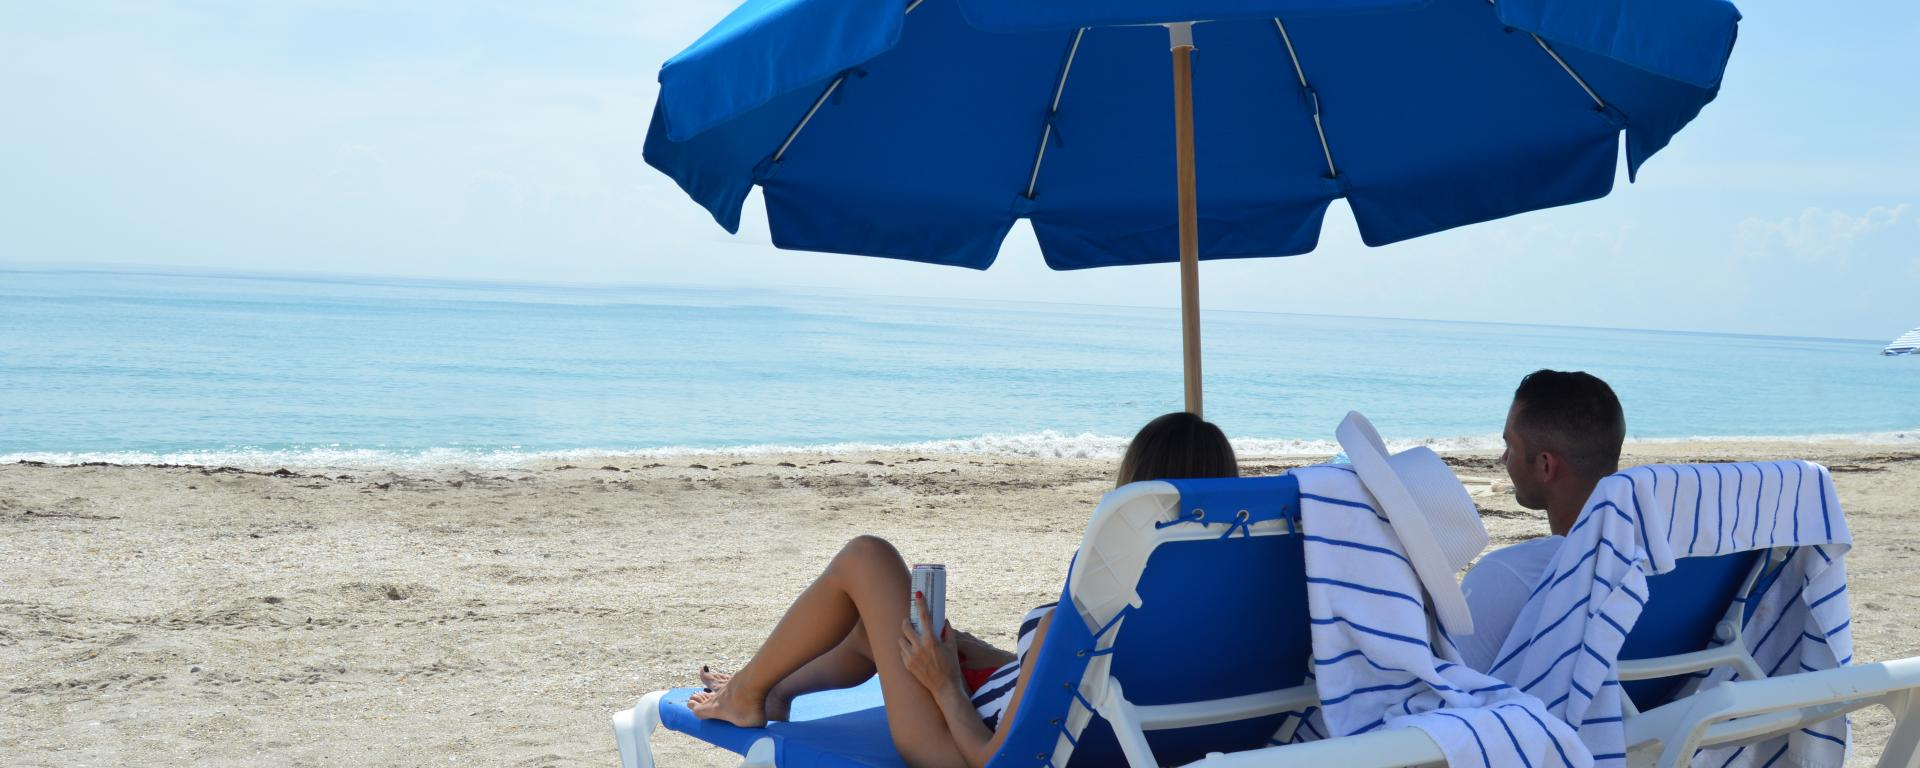 A couple sitting on the beach in beach chairs and an umbrella.